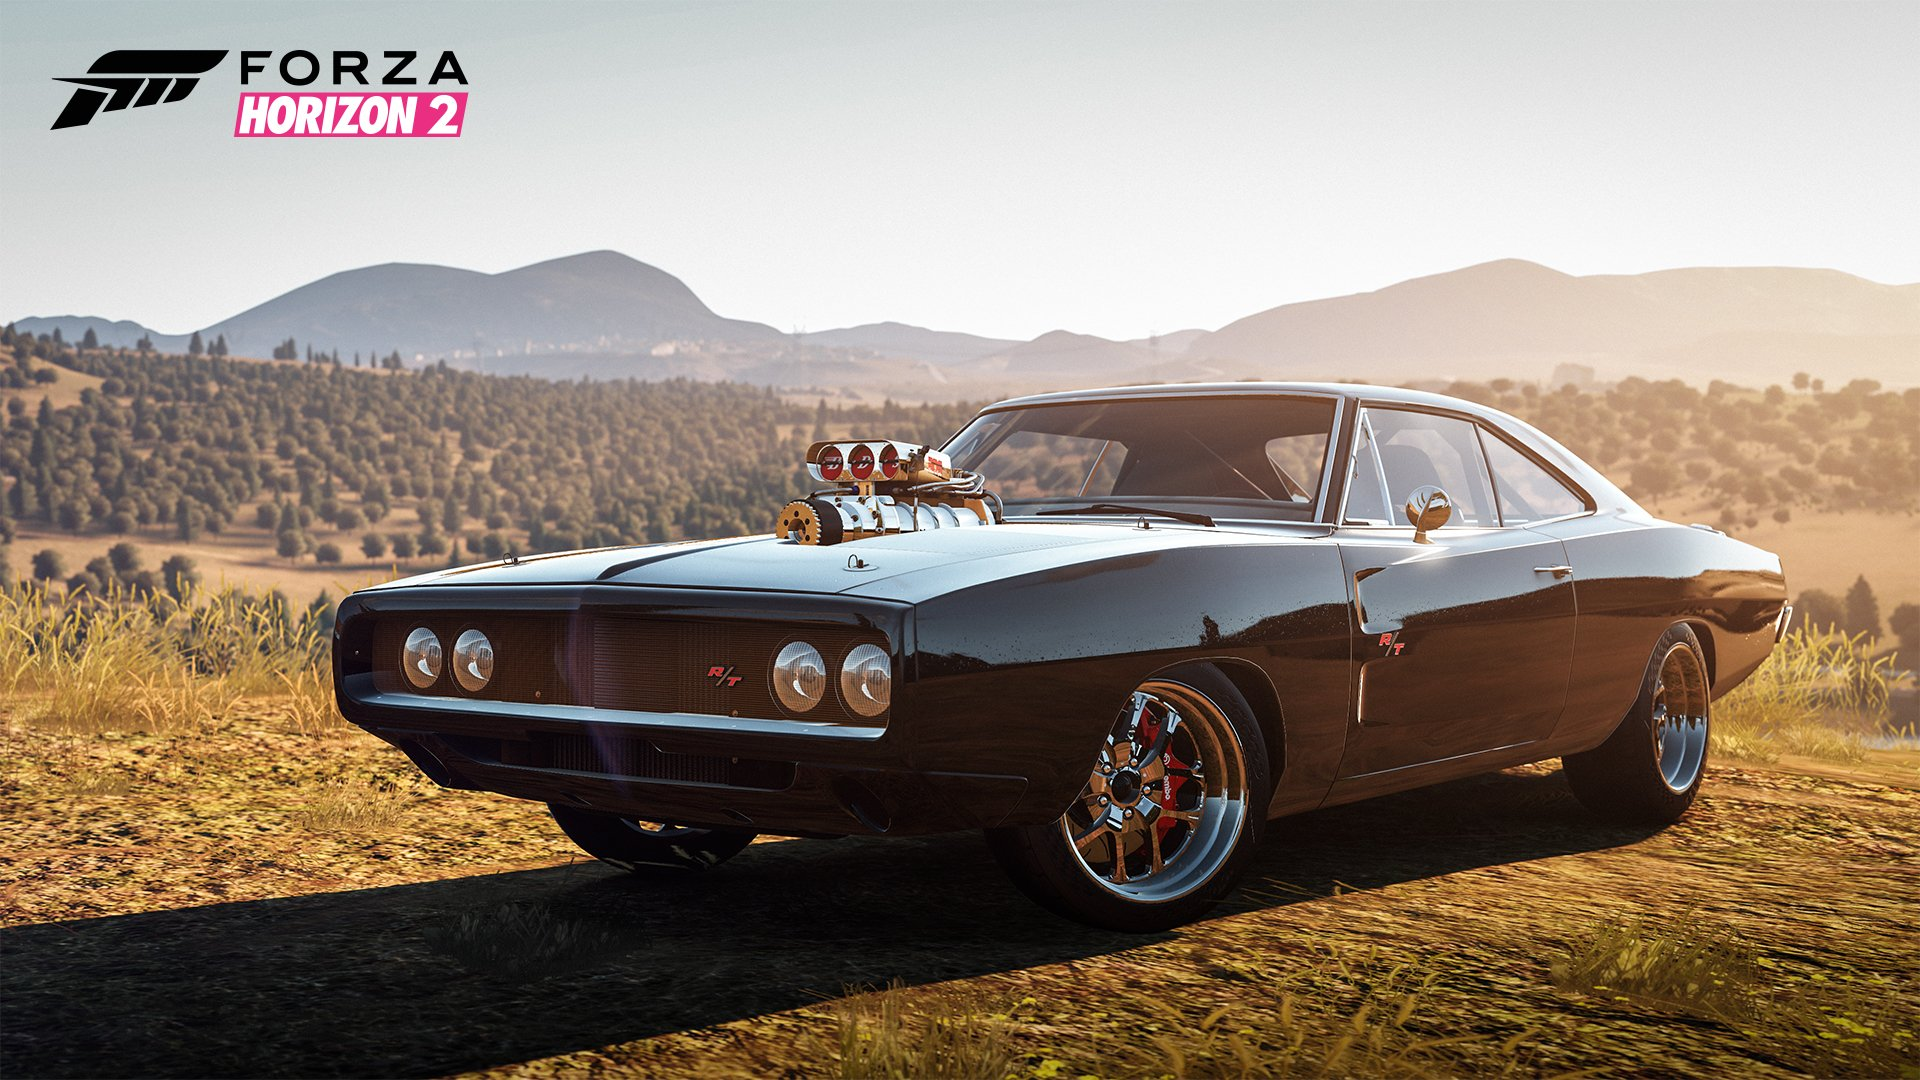 1970 Dodge Charger Rt Fast Furious Edition Hd Wallpaper